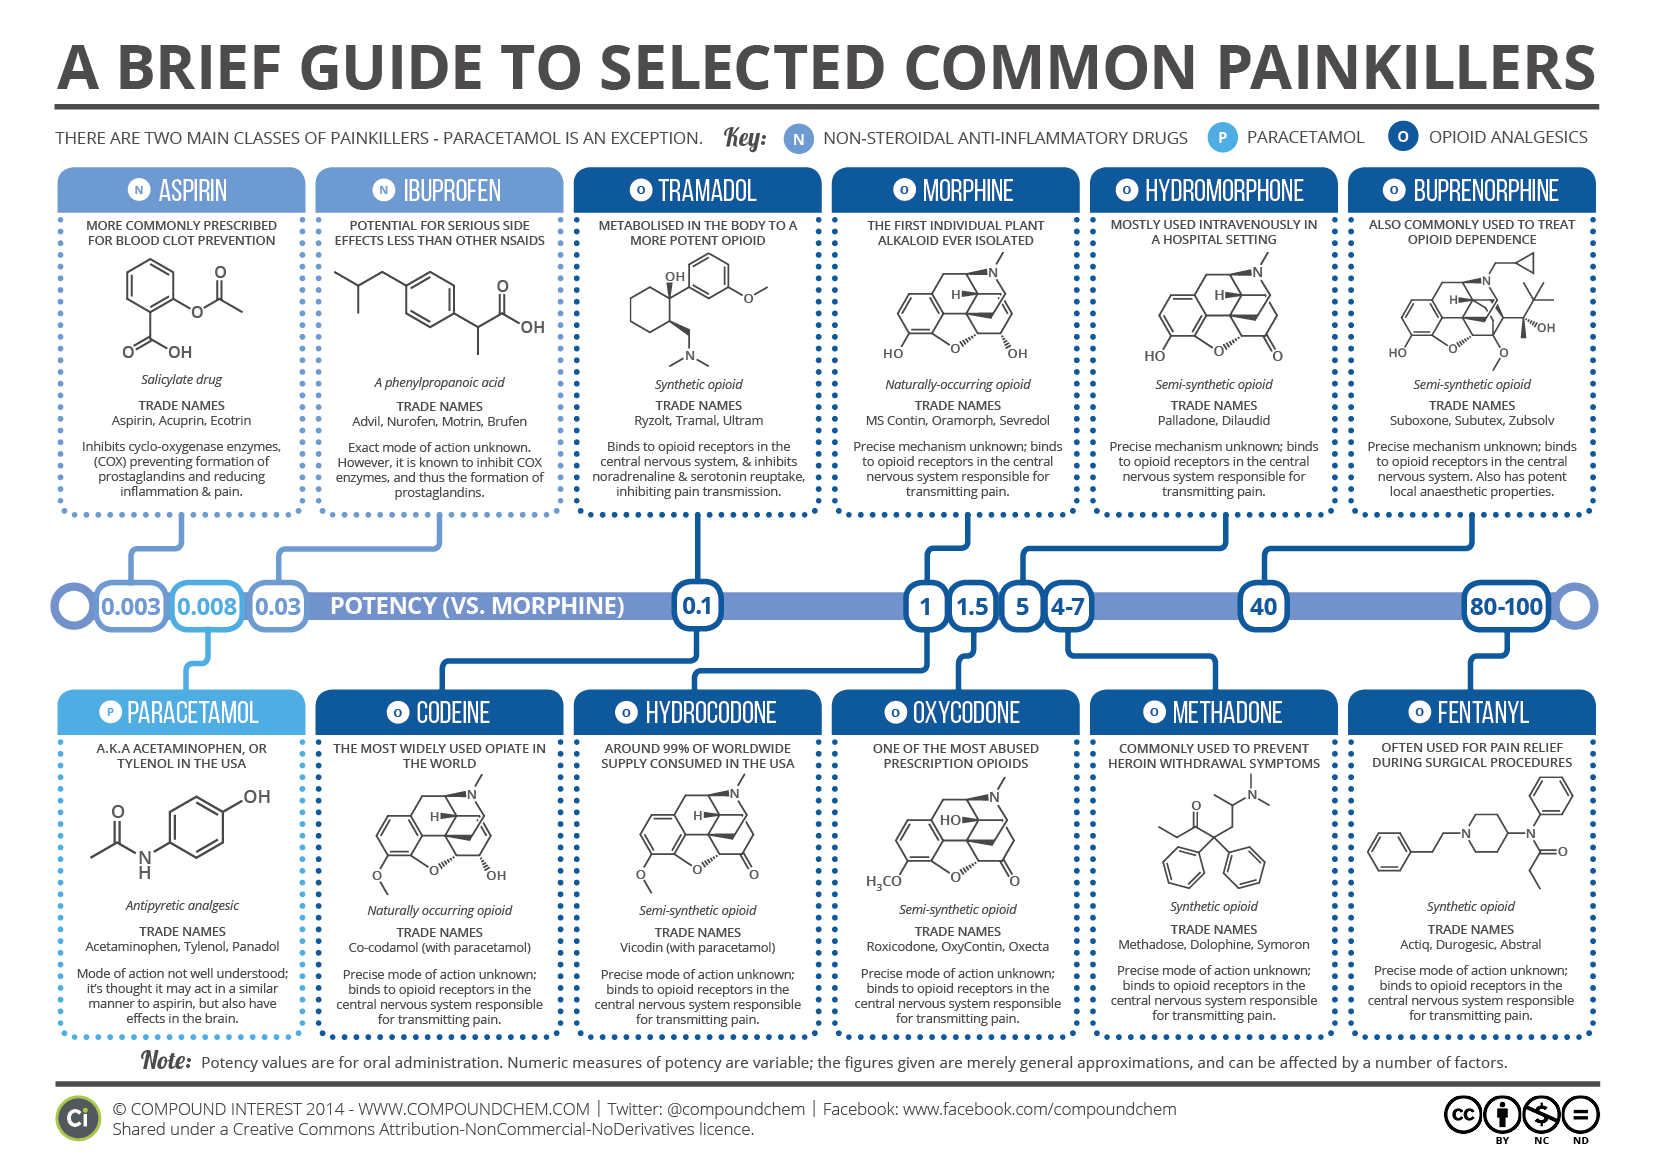 Brief Guide to Common Painkillers [2016]